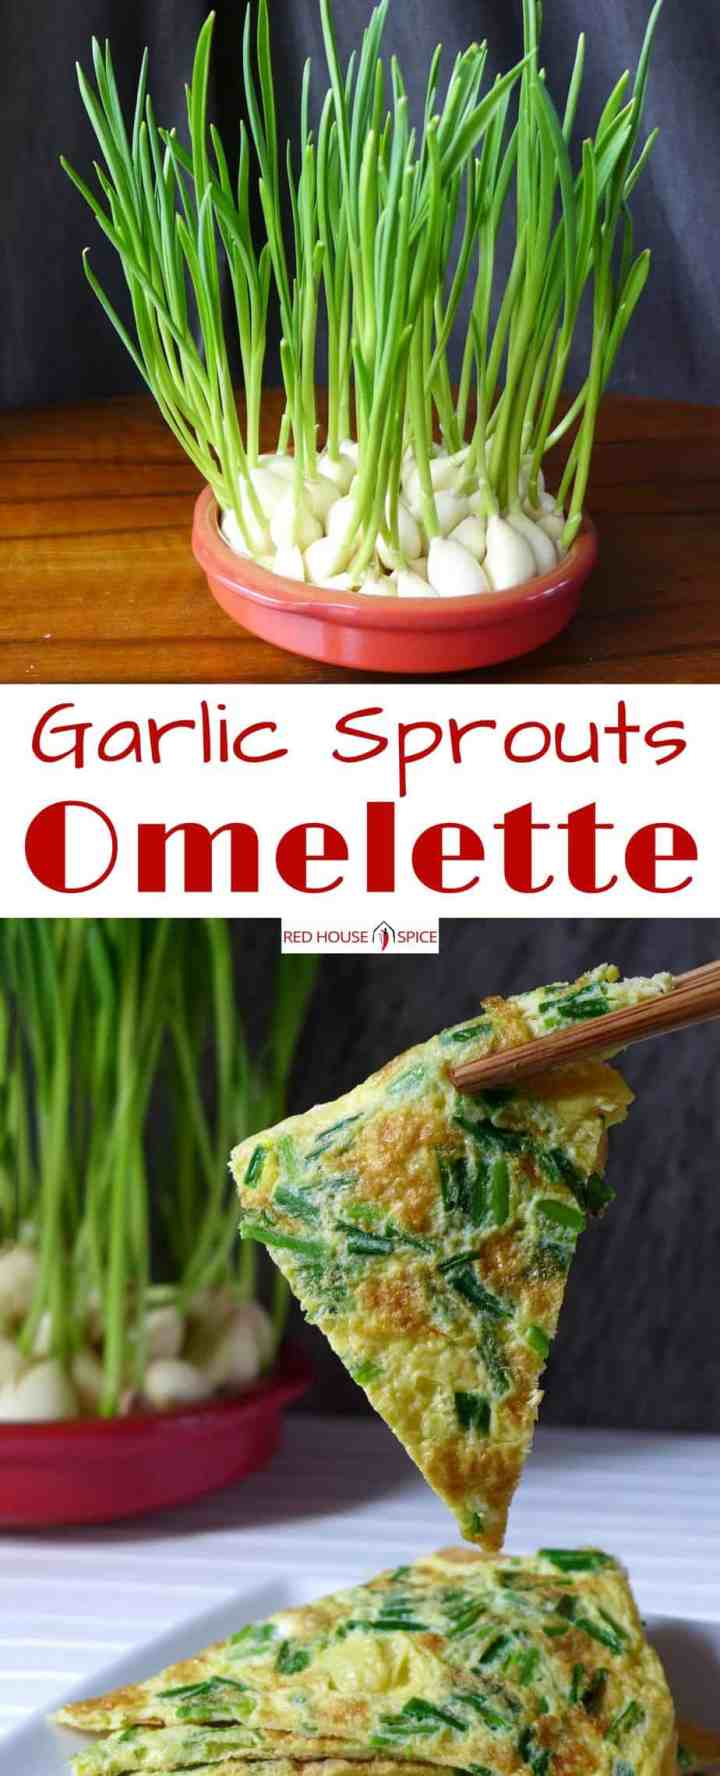 Don't discard sprouted garlic! Grow them in water instead. Homegrown garlic sprouts add great flavour to omelette, noodles, salad, stir-fry, etc.